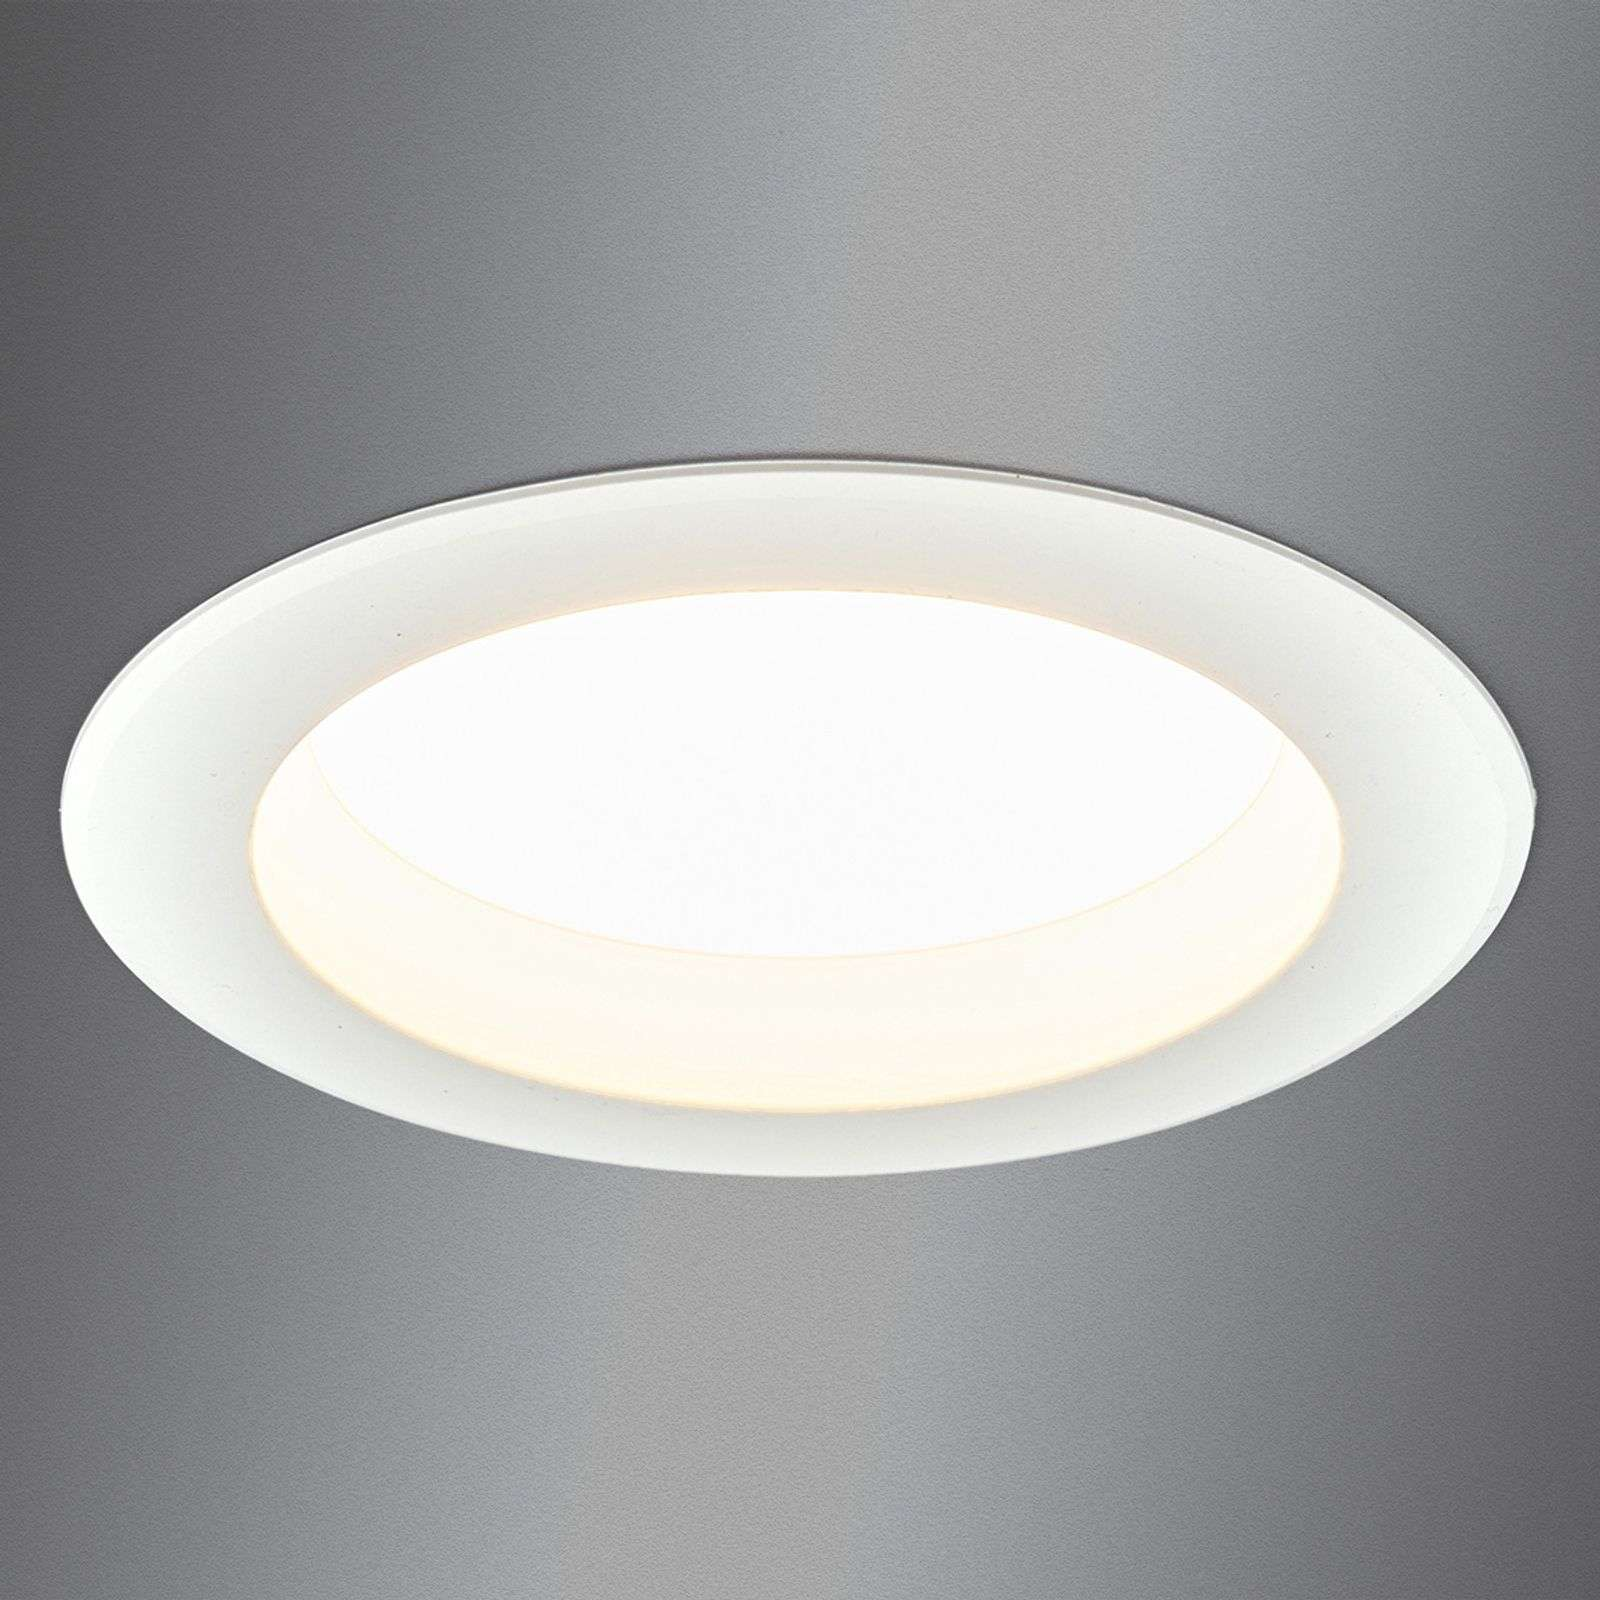 Bright LED recessed light Arian, 14.5 cm, 12.5 W